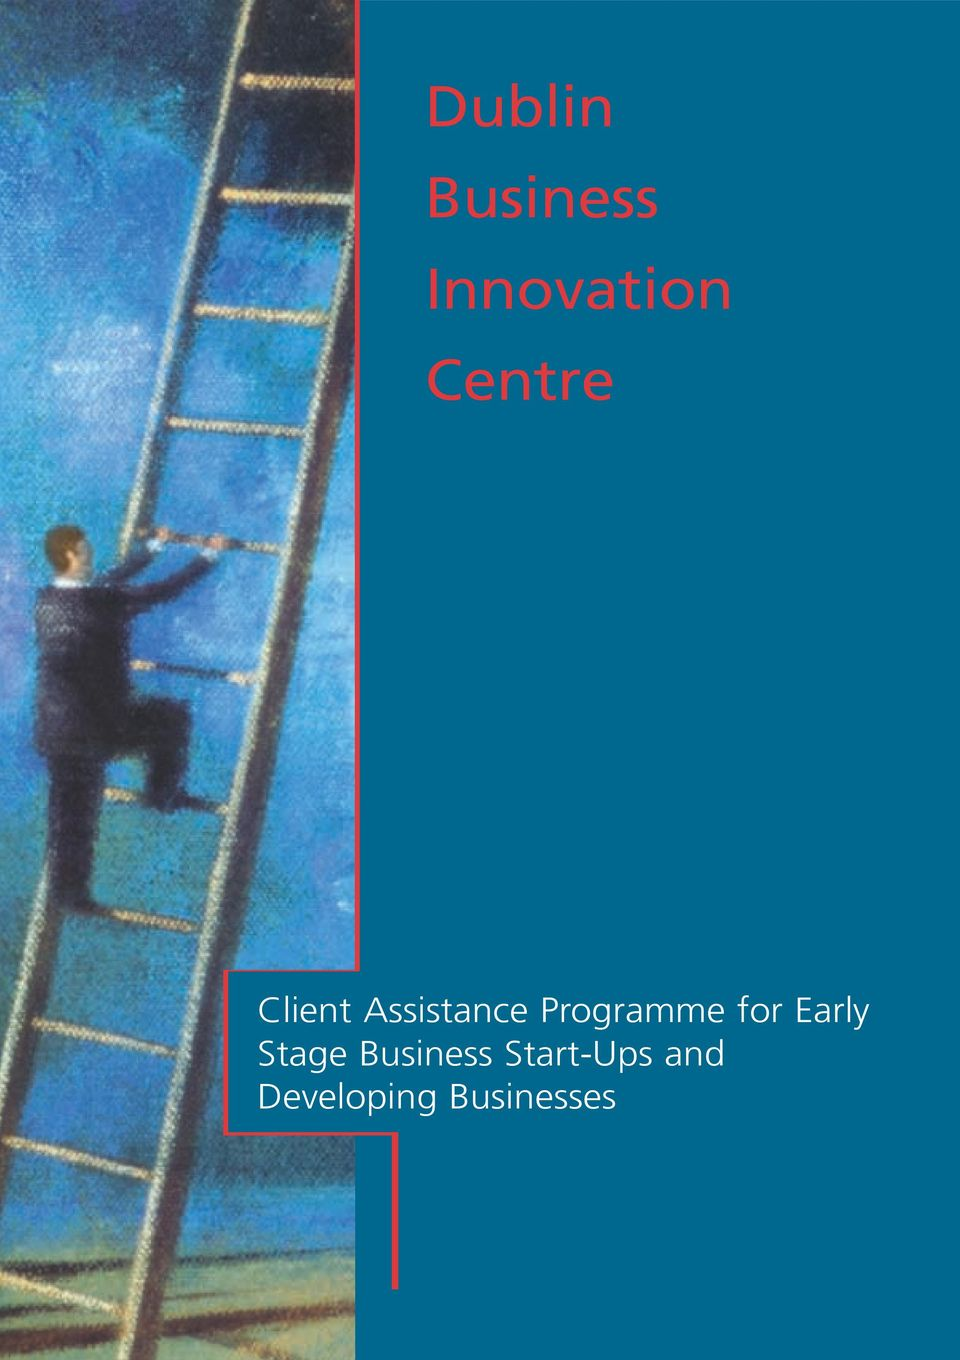 Programme for Early Stage